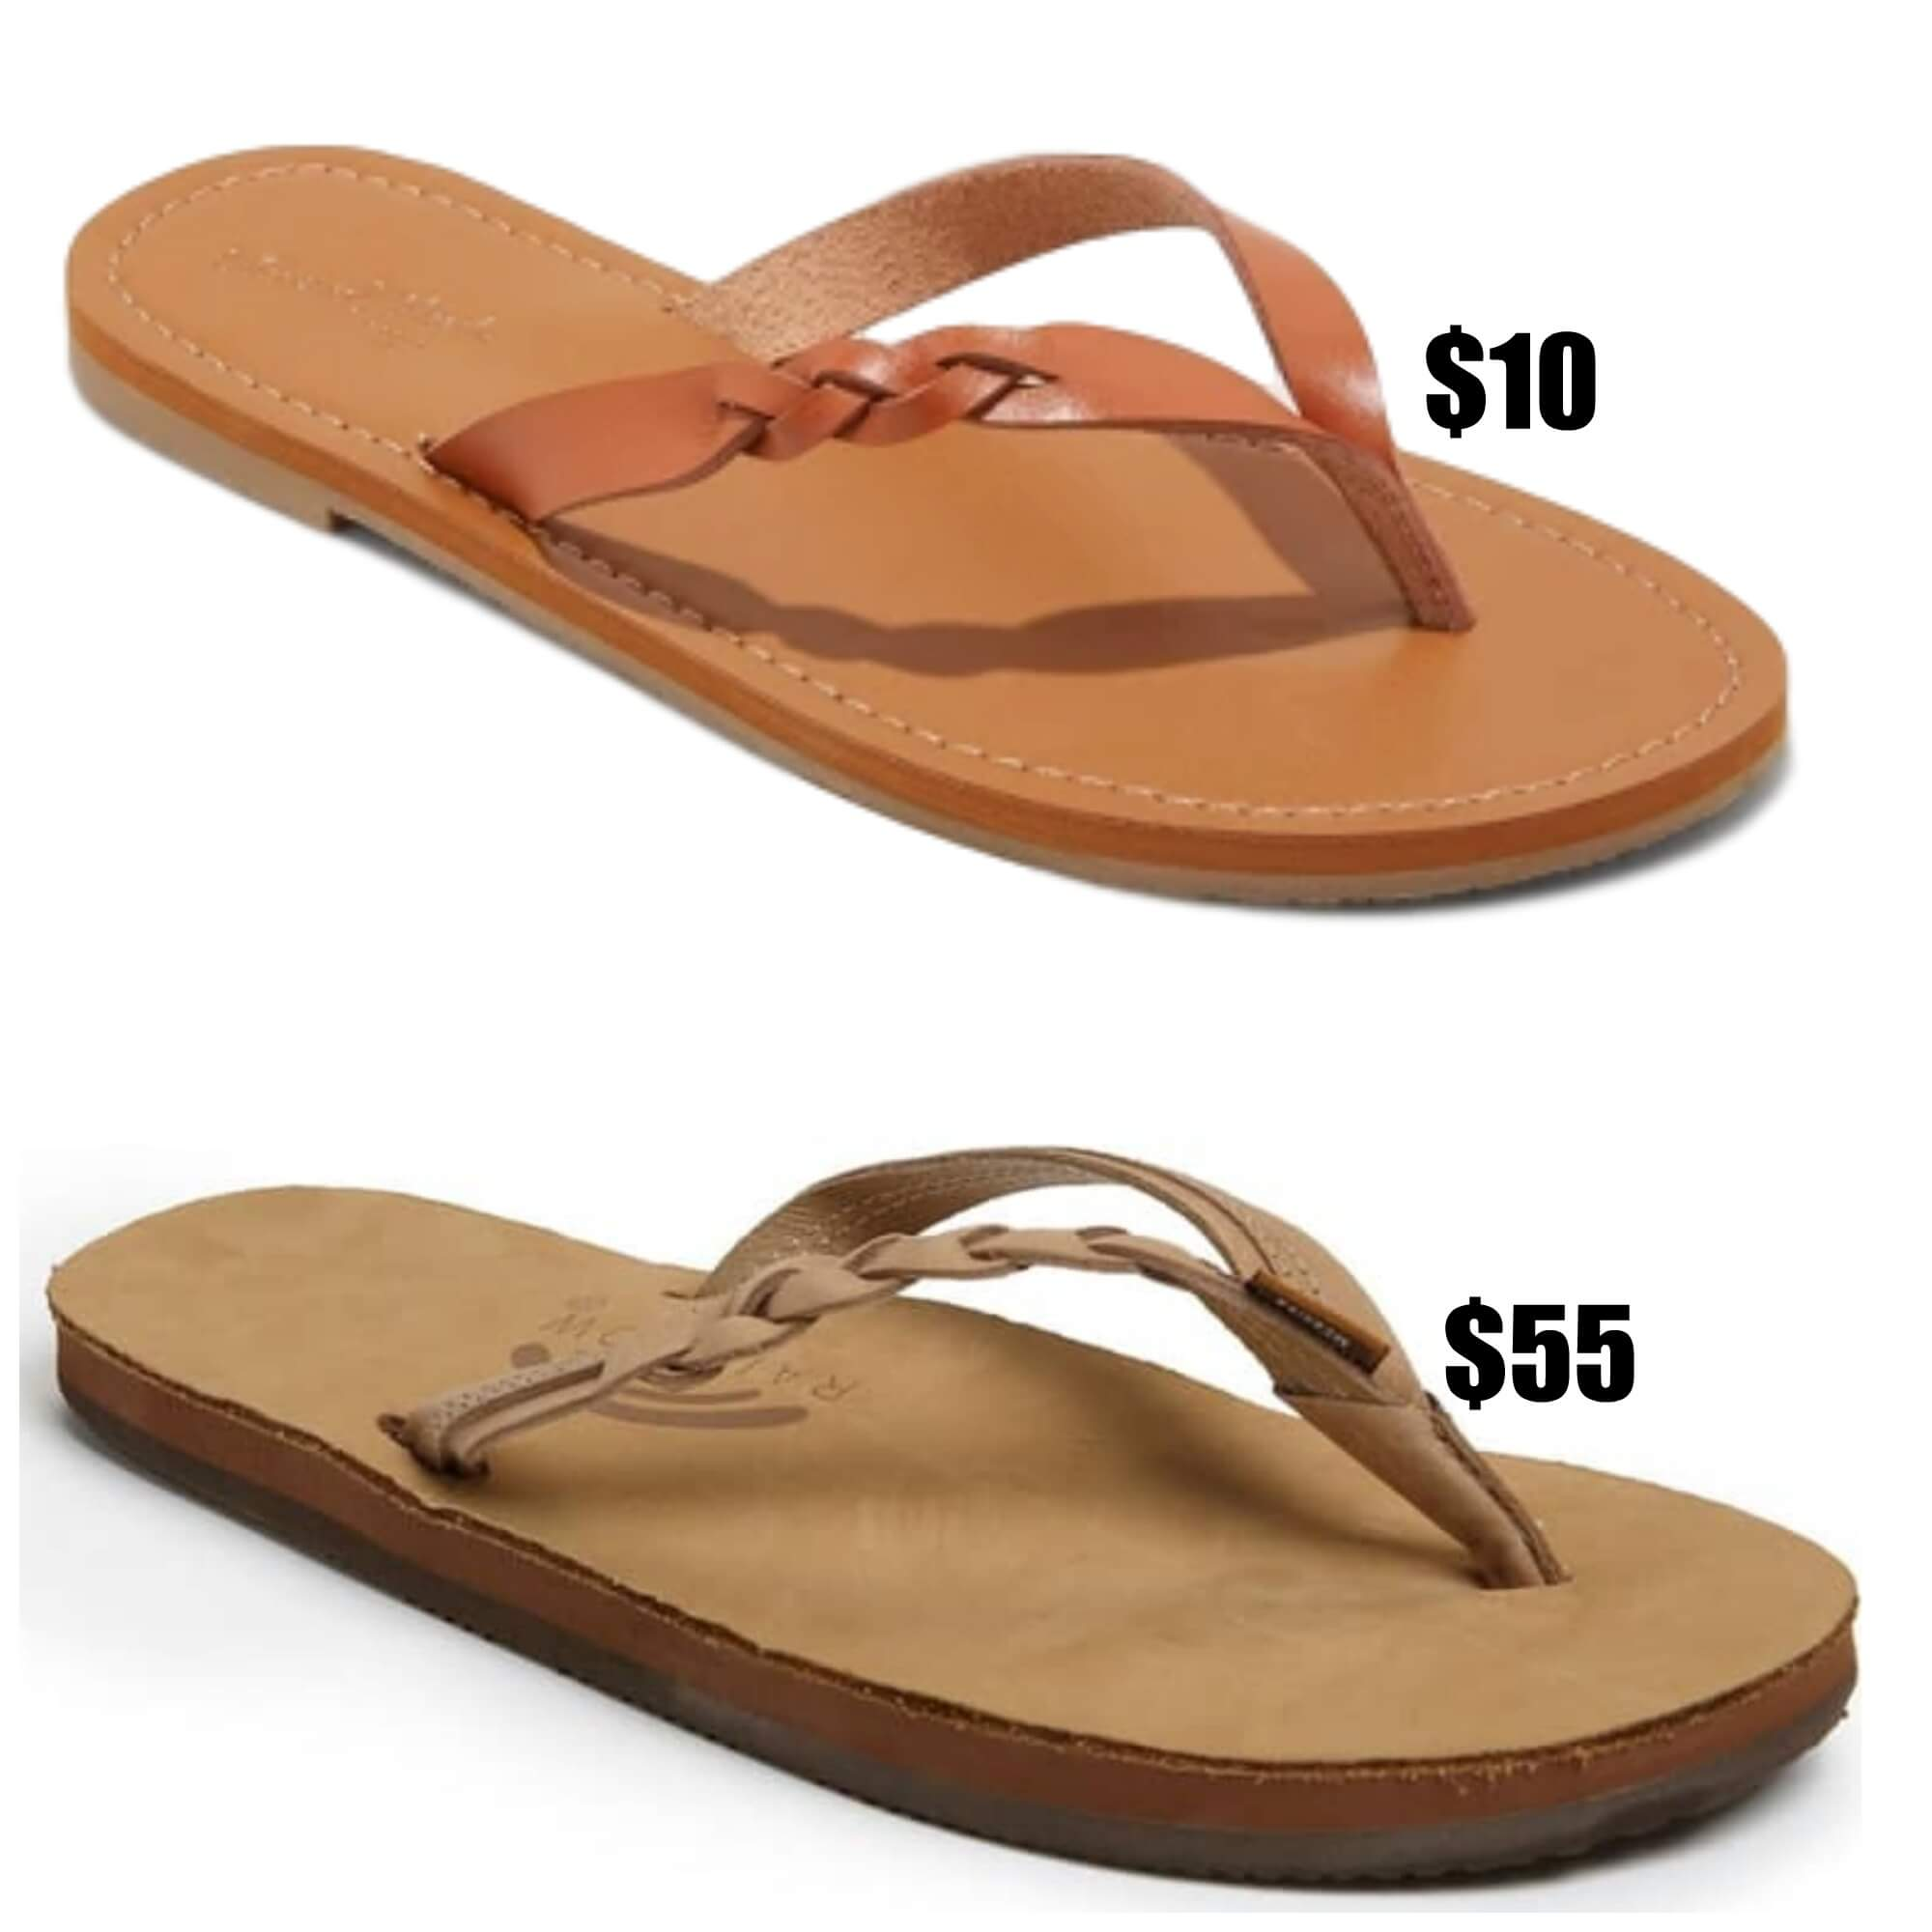 6b47c5e52bf5 Rainbow Sandals are super popular but  50! I found a Target Dupe for only   10!